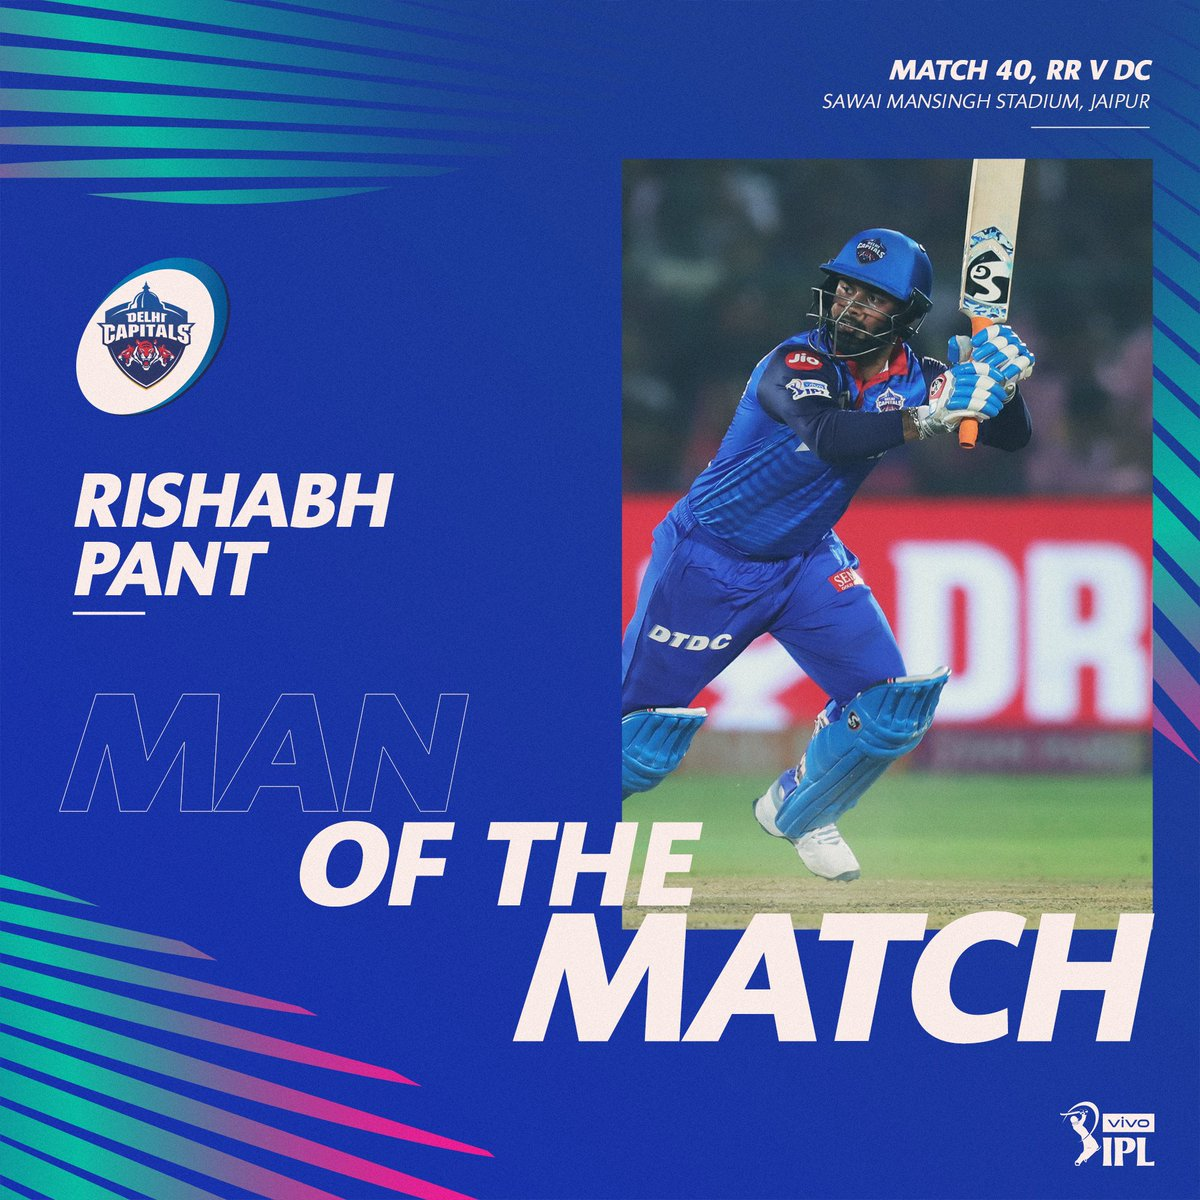 Rishabh Pant is adjudged the Man of the Match for his match-winning innings of 78* off 36 deliveries 🕺🕺